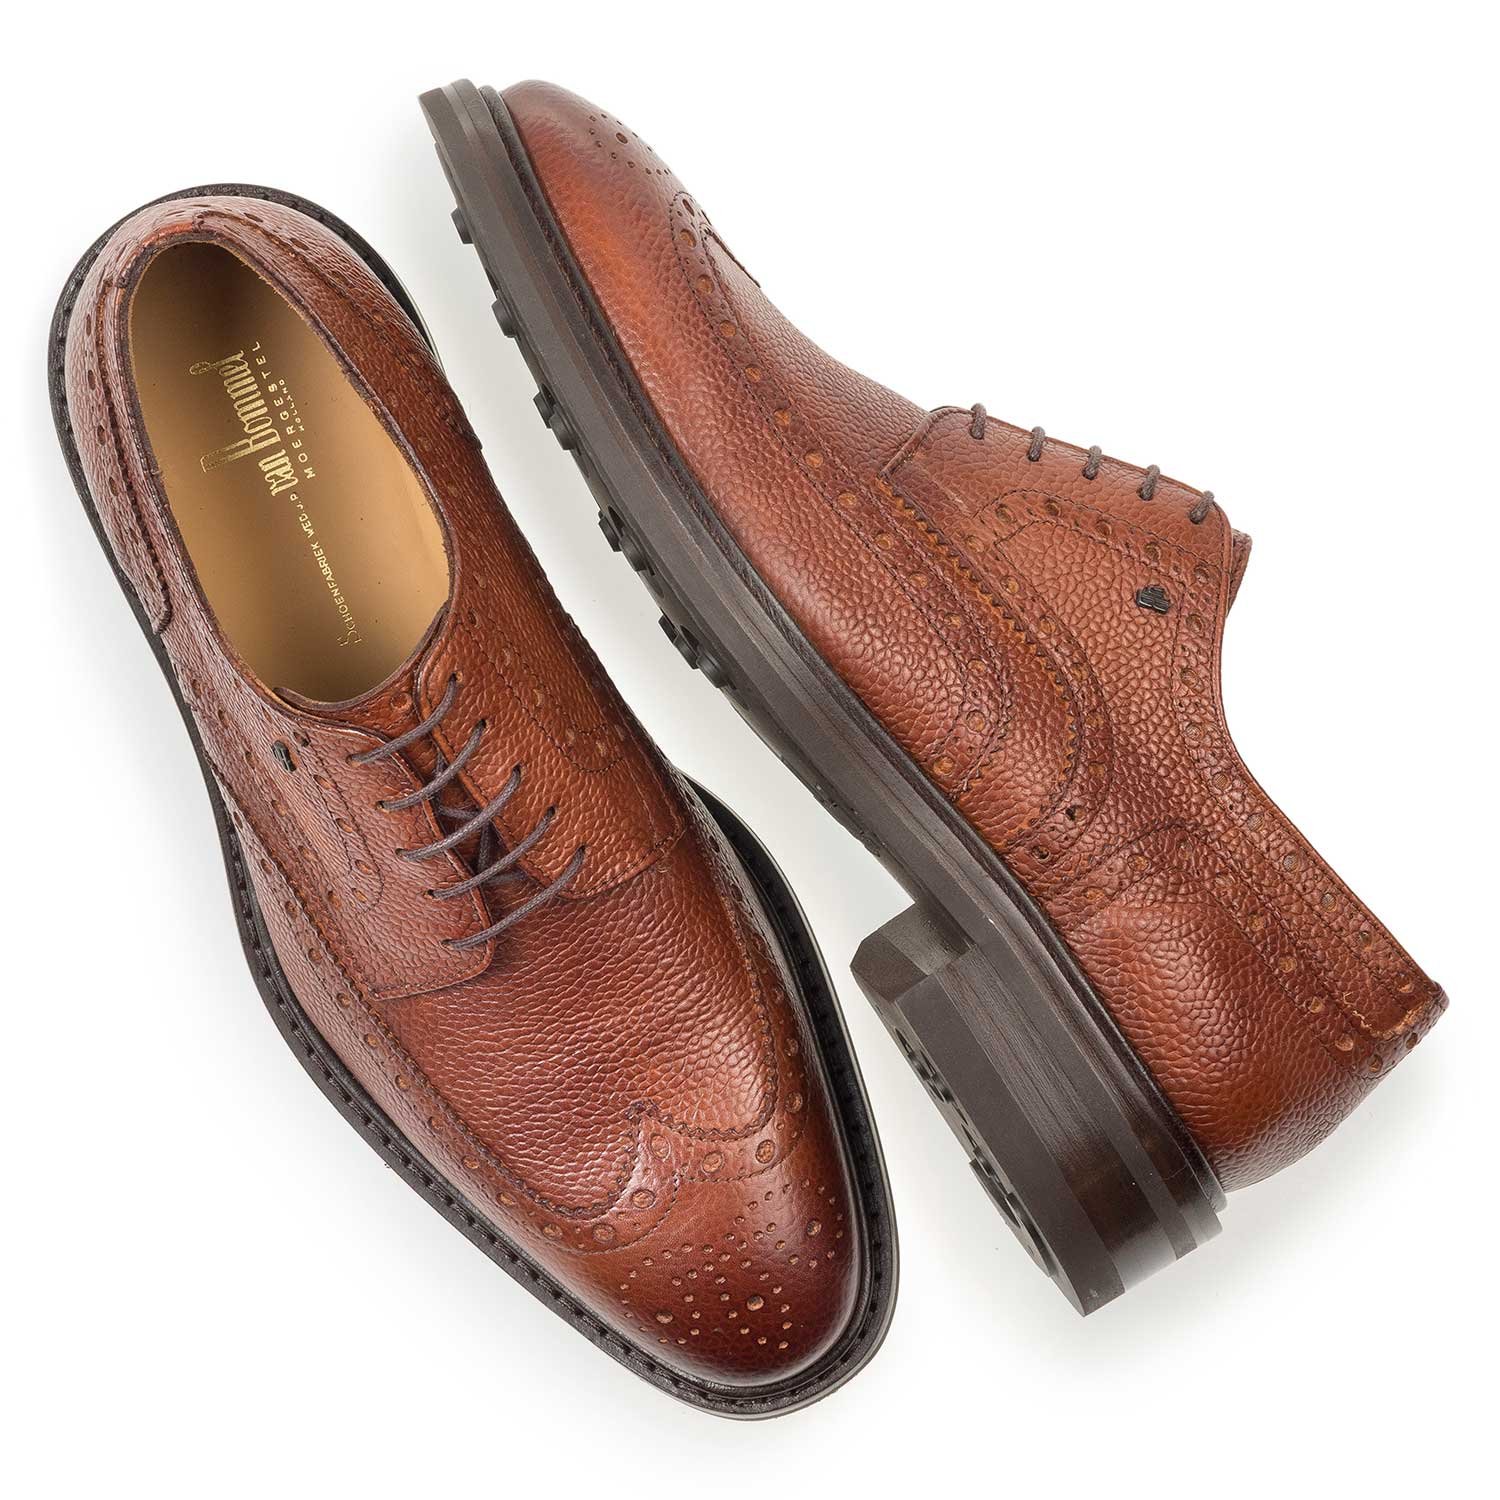 17093/05 - Cognac-coloured leather brogue lace shoe